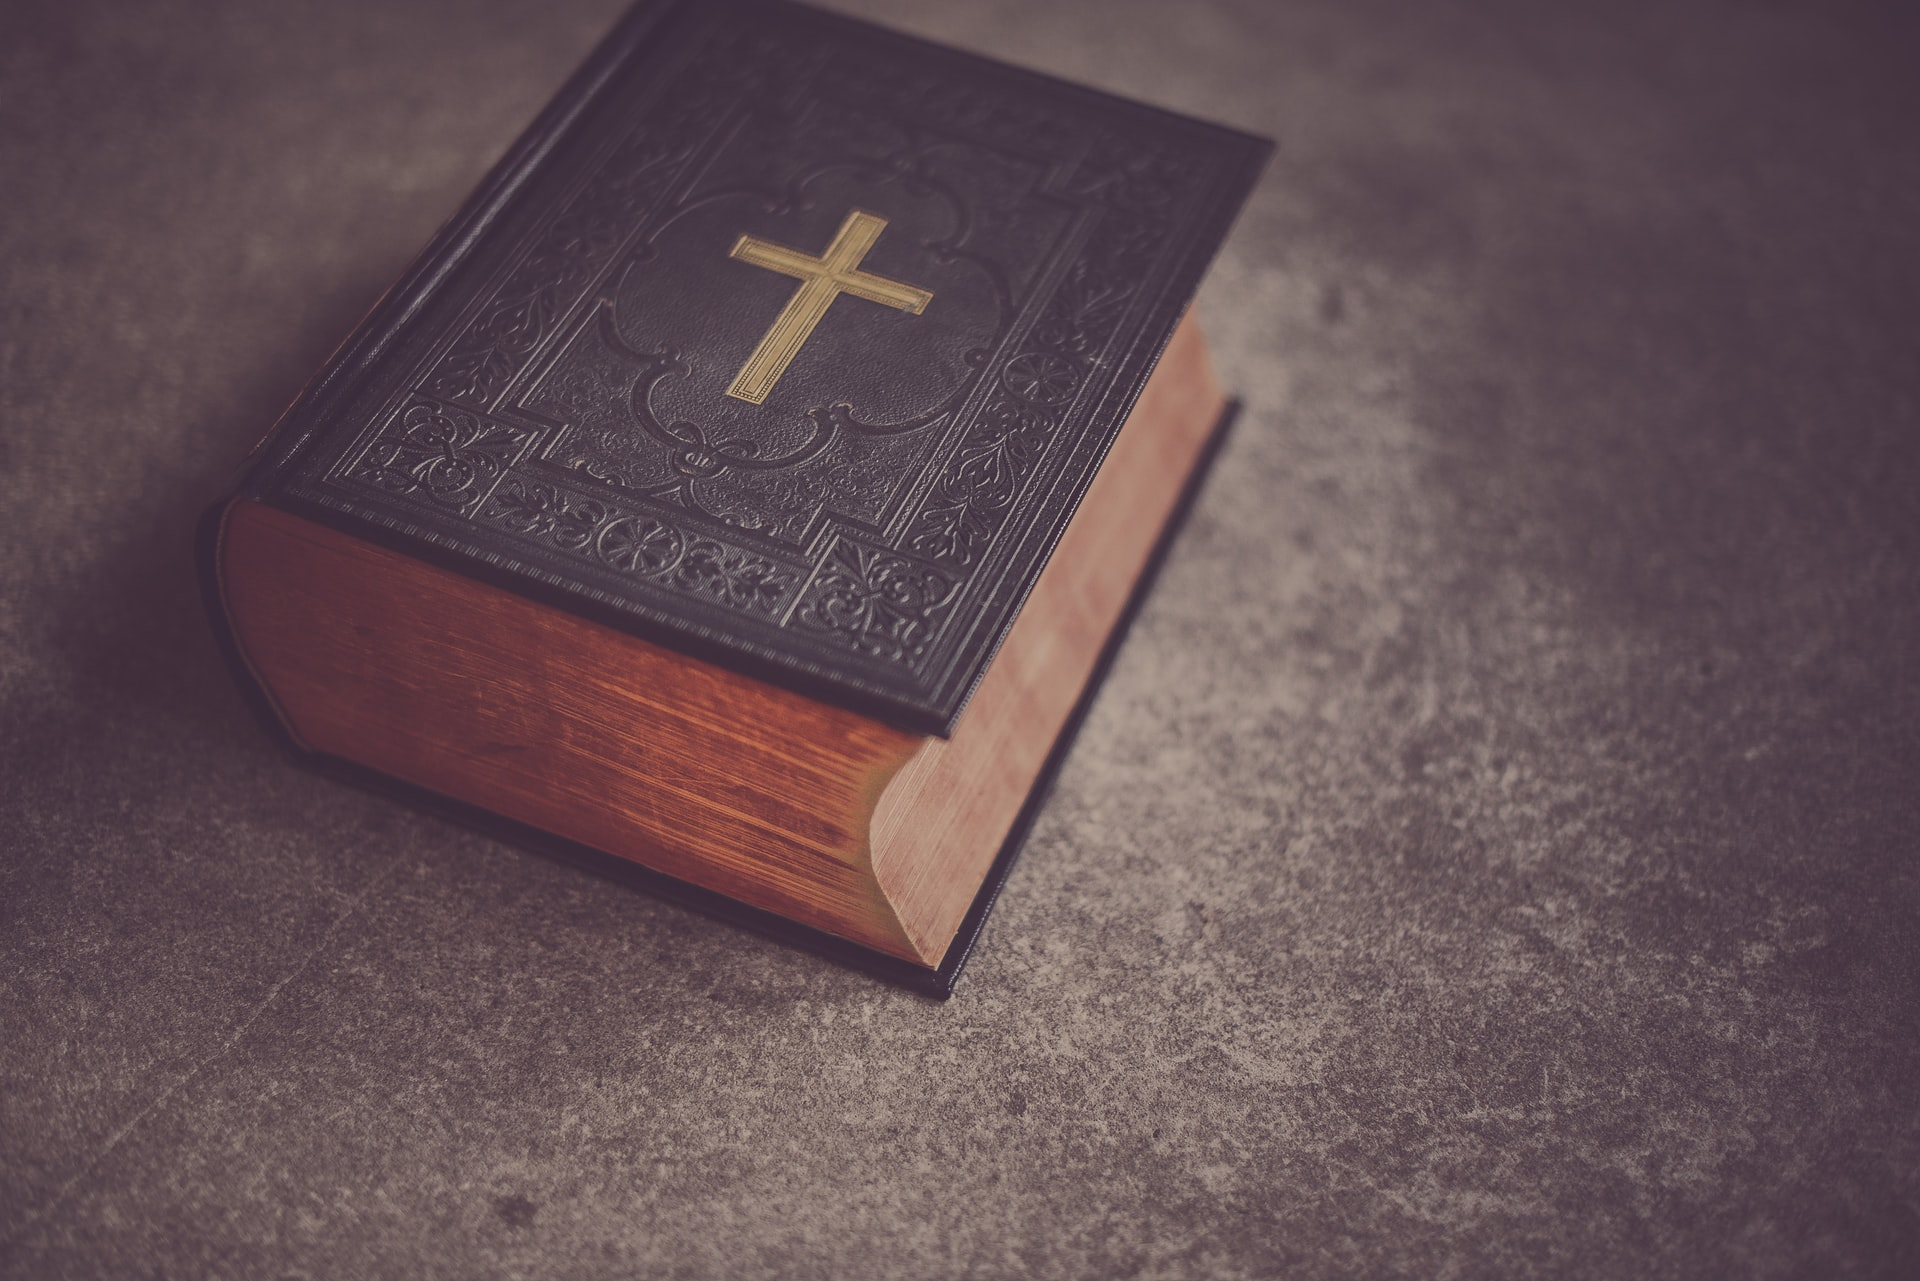 New translation work supports church planting in Iran